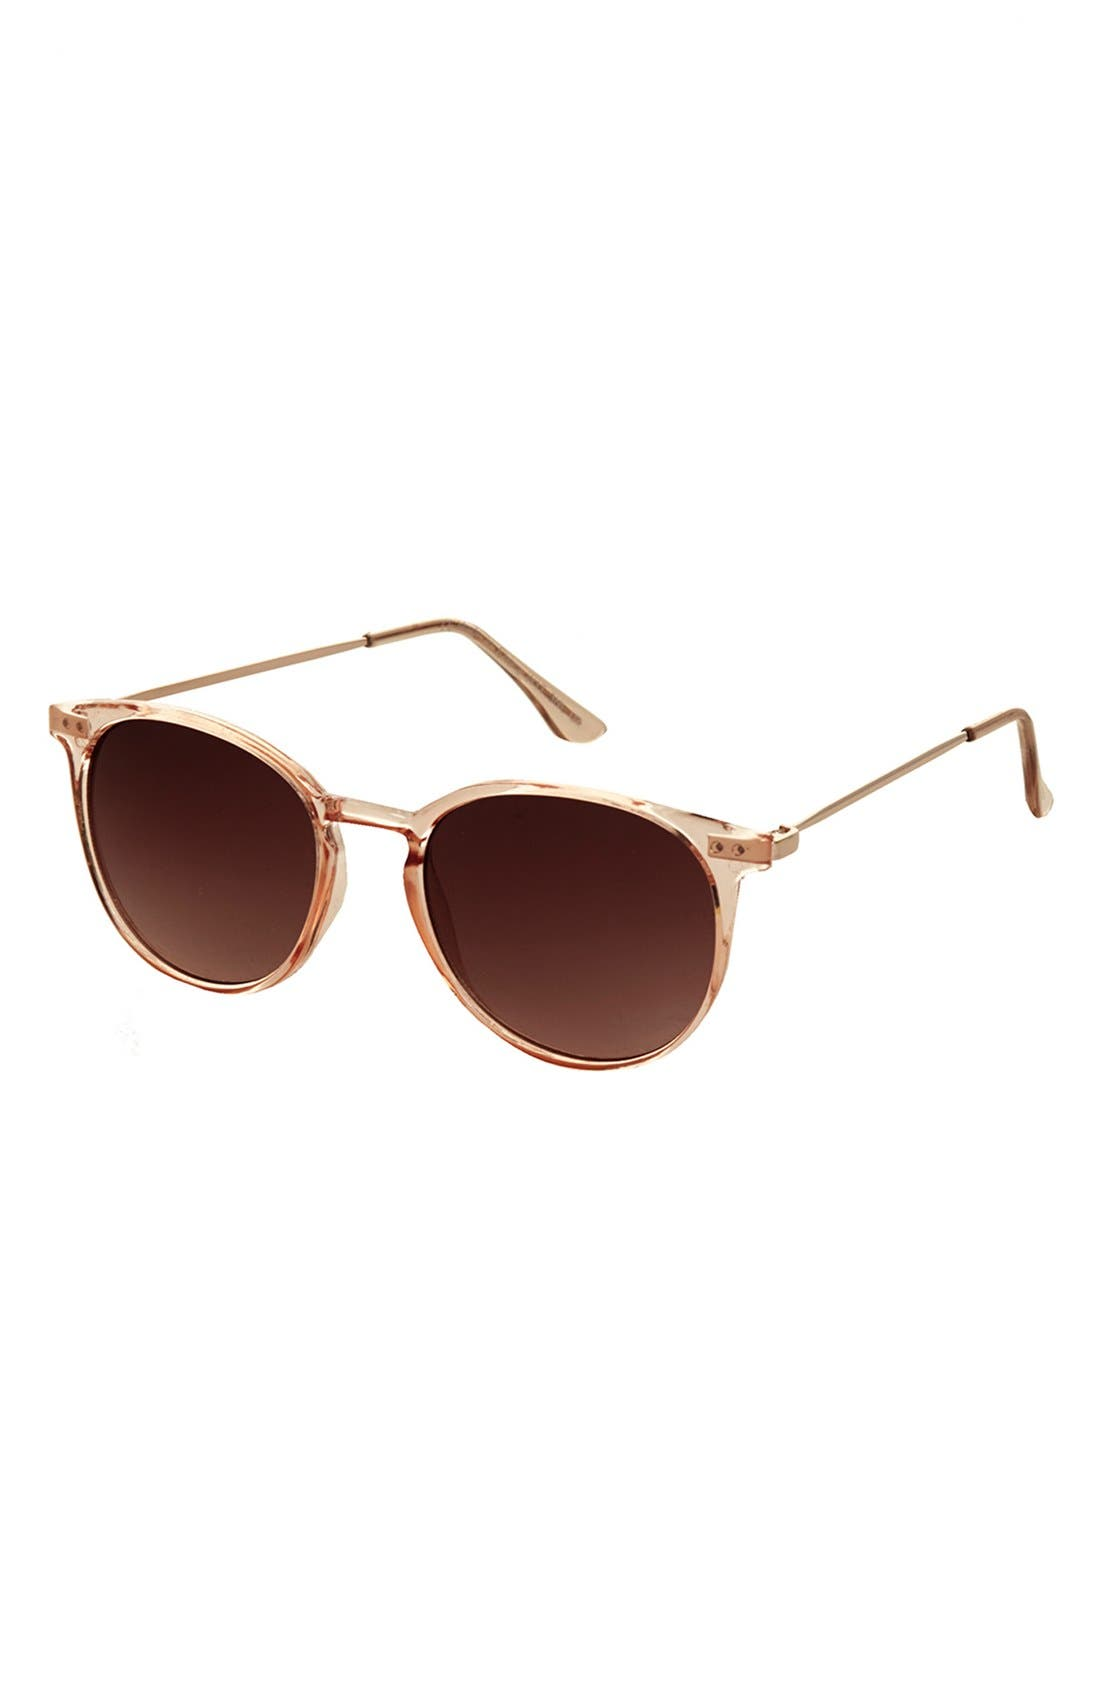 Main Image - Topshop 51mm Slim Sunglasses